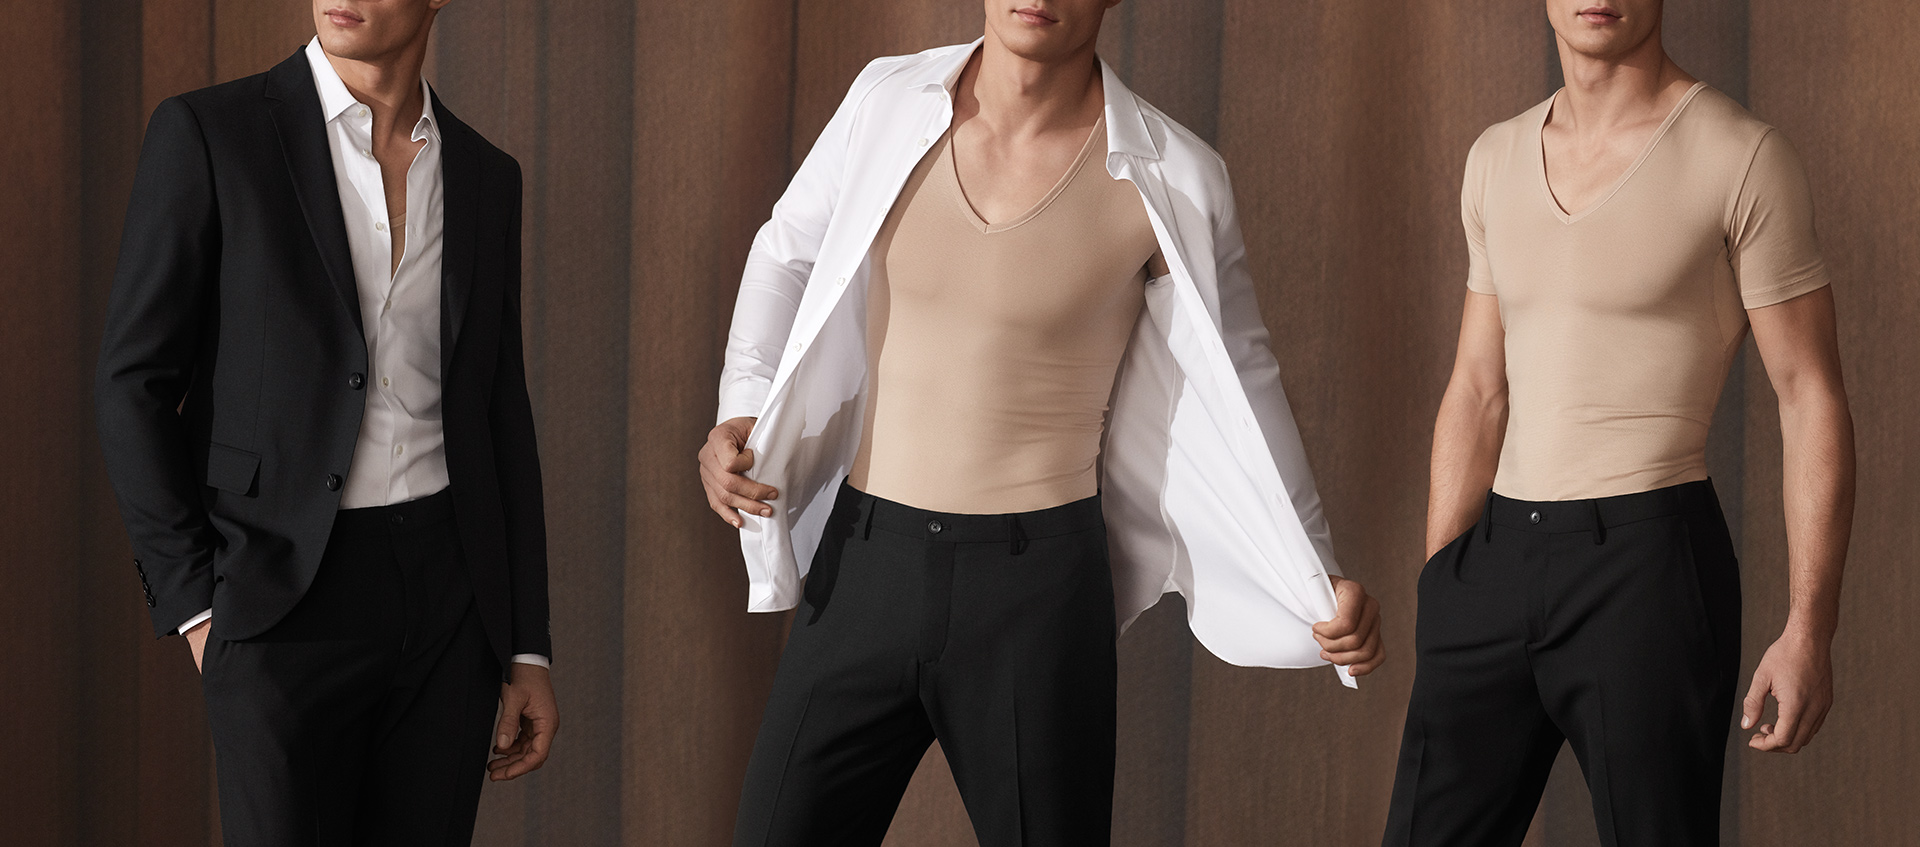 The undershirt by mey is specially designed for the discerning requirements of businessmen | mey®